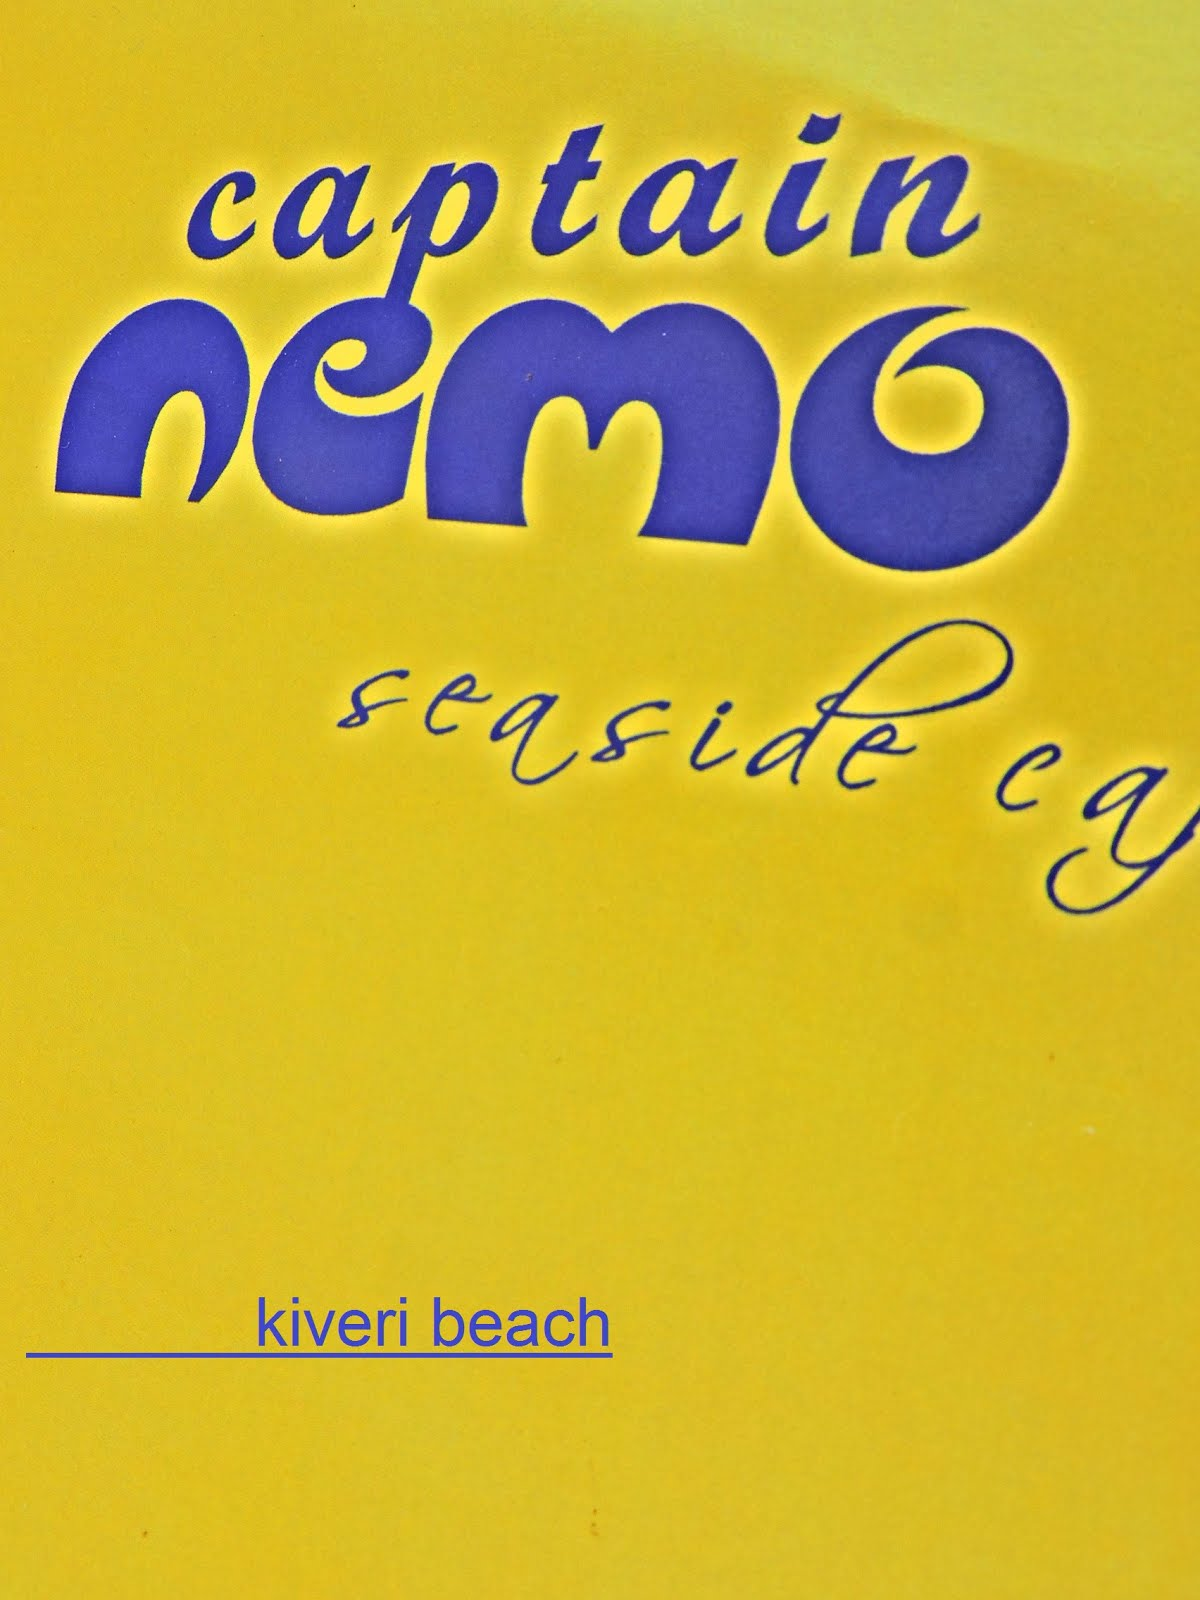 Captain Nemo Seaside Cafe-kiveri beach